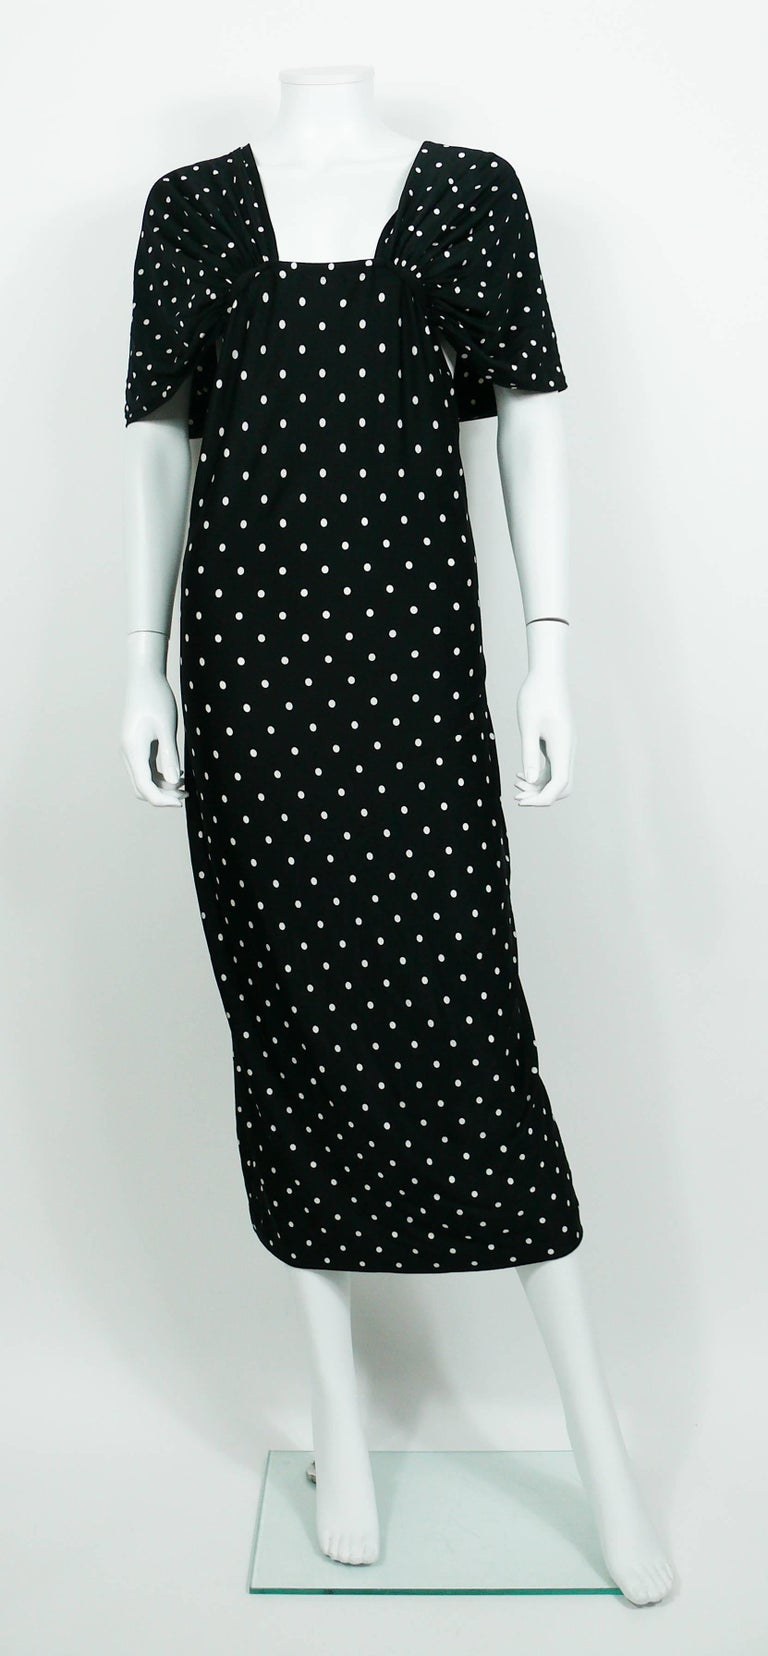 Women's Patrick Kelly Vintage Black White Polka Dot Dress US Size 10 For Sale